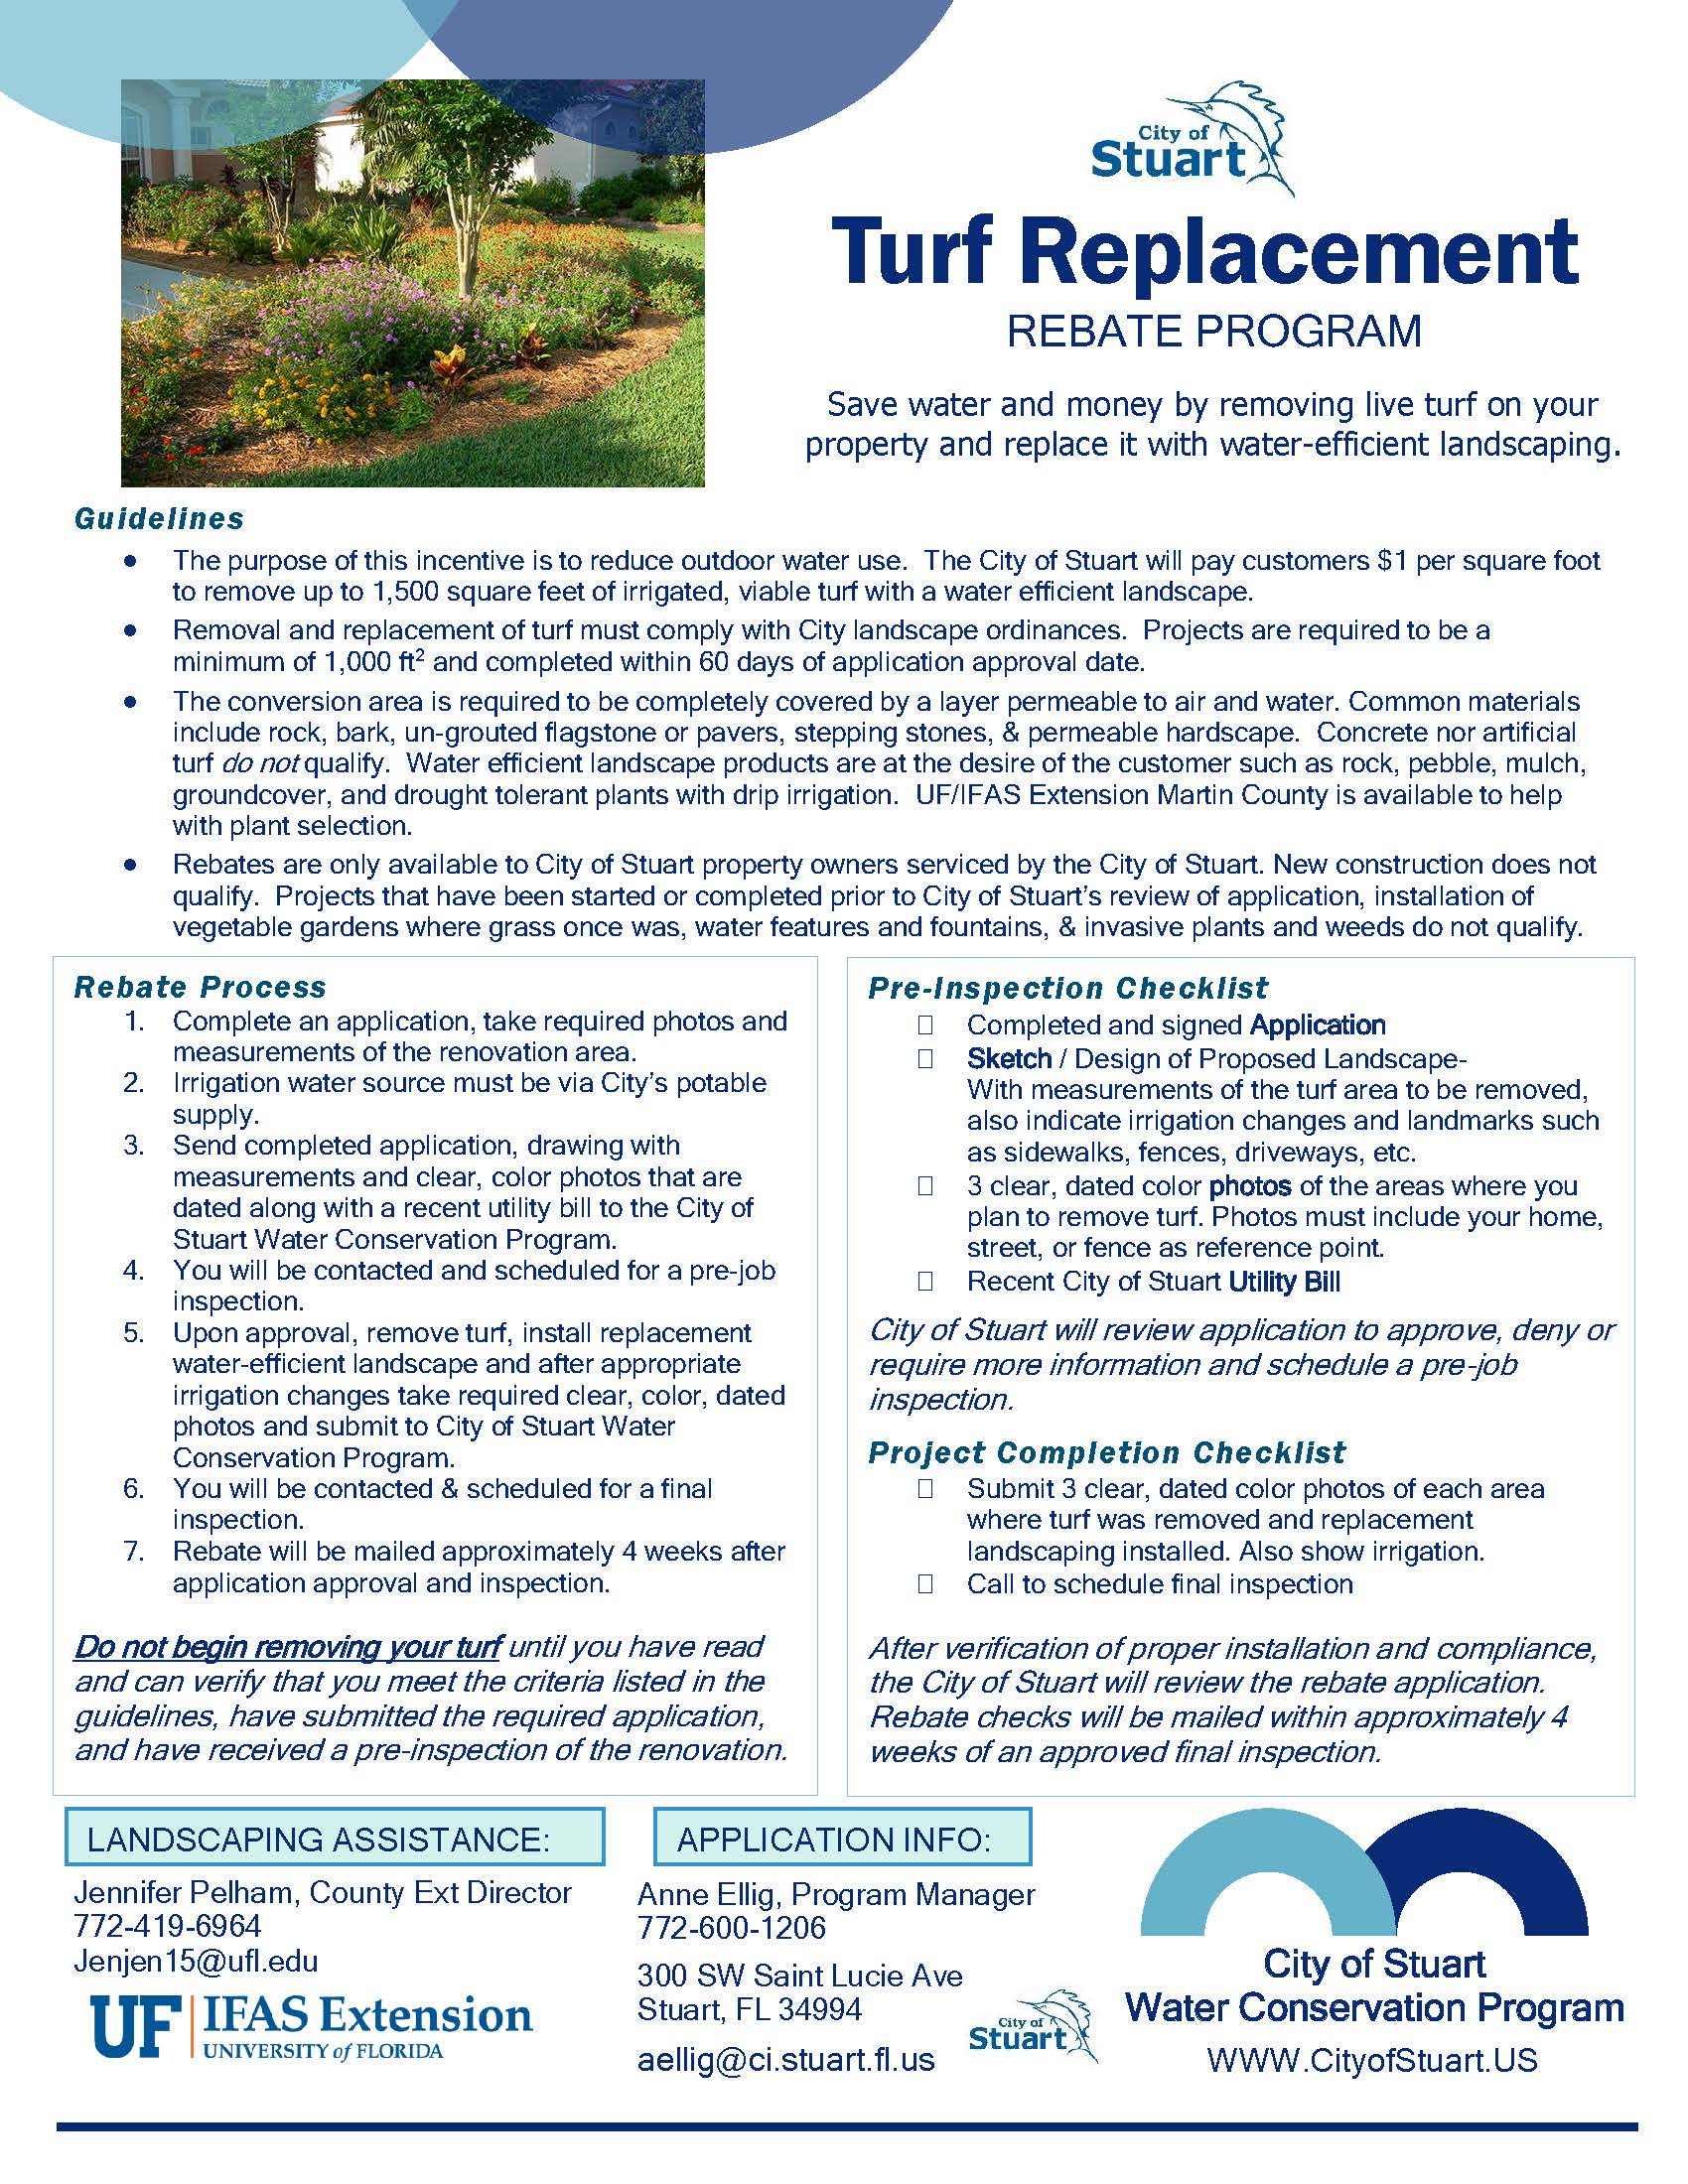 1 Turf Replace Program Flyer Graphic